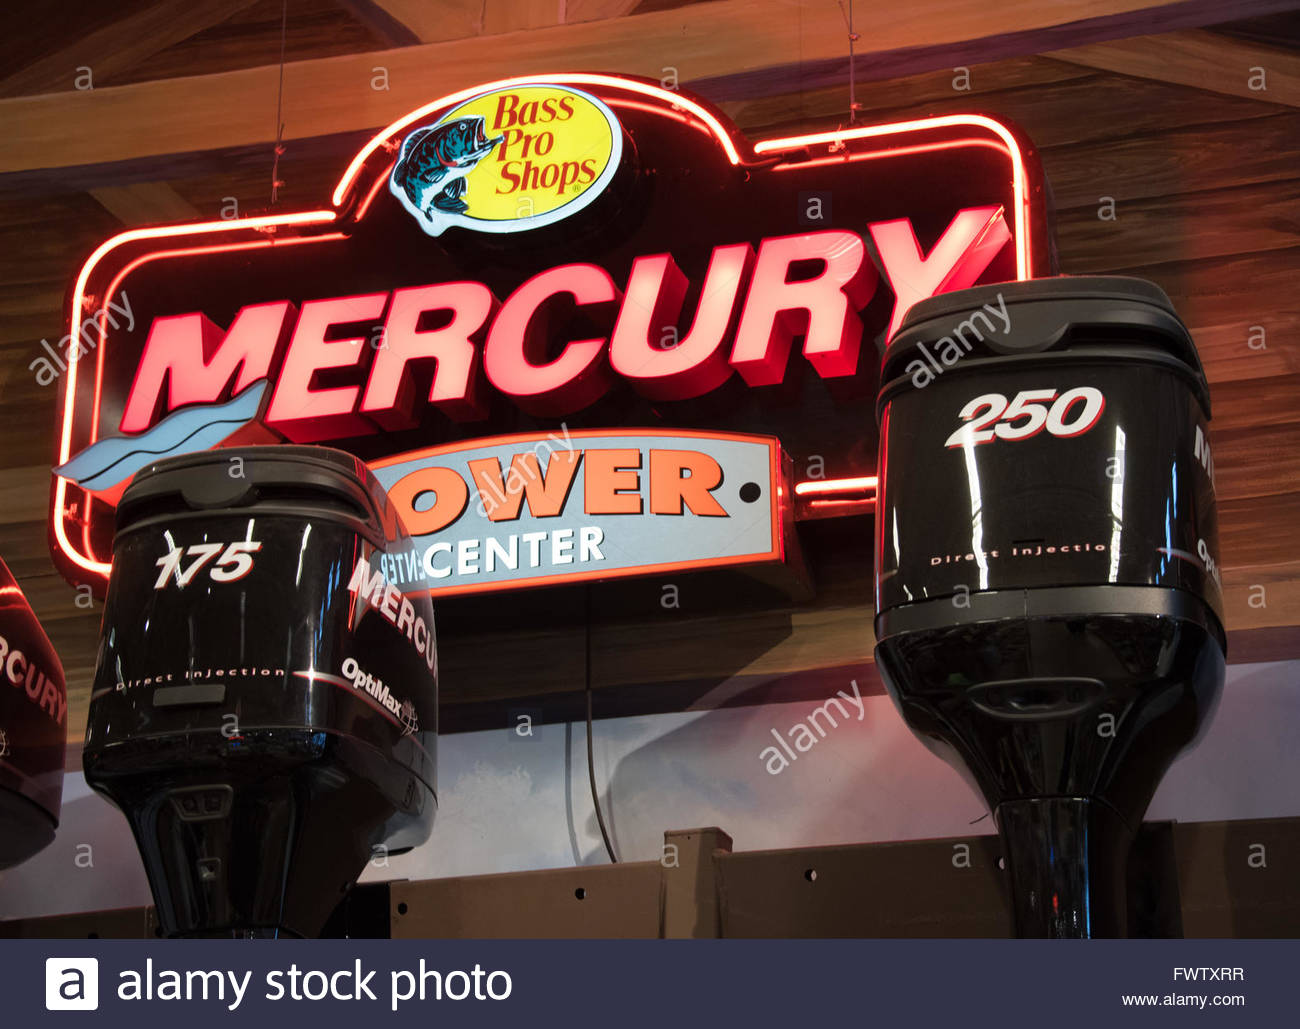 Bass Pro Shop Outdoor World Mercury Boat Engines Shops Are A Stock